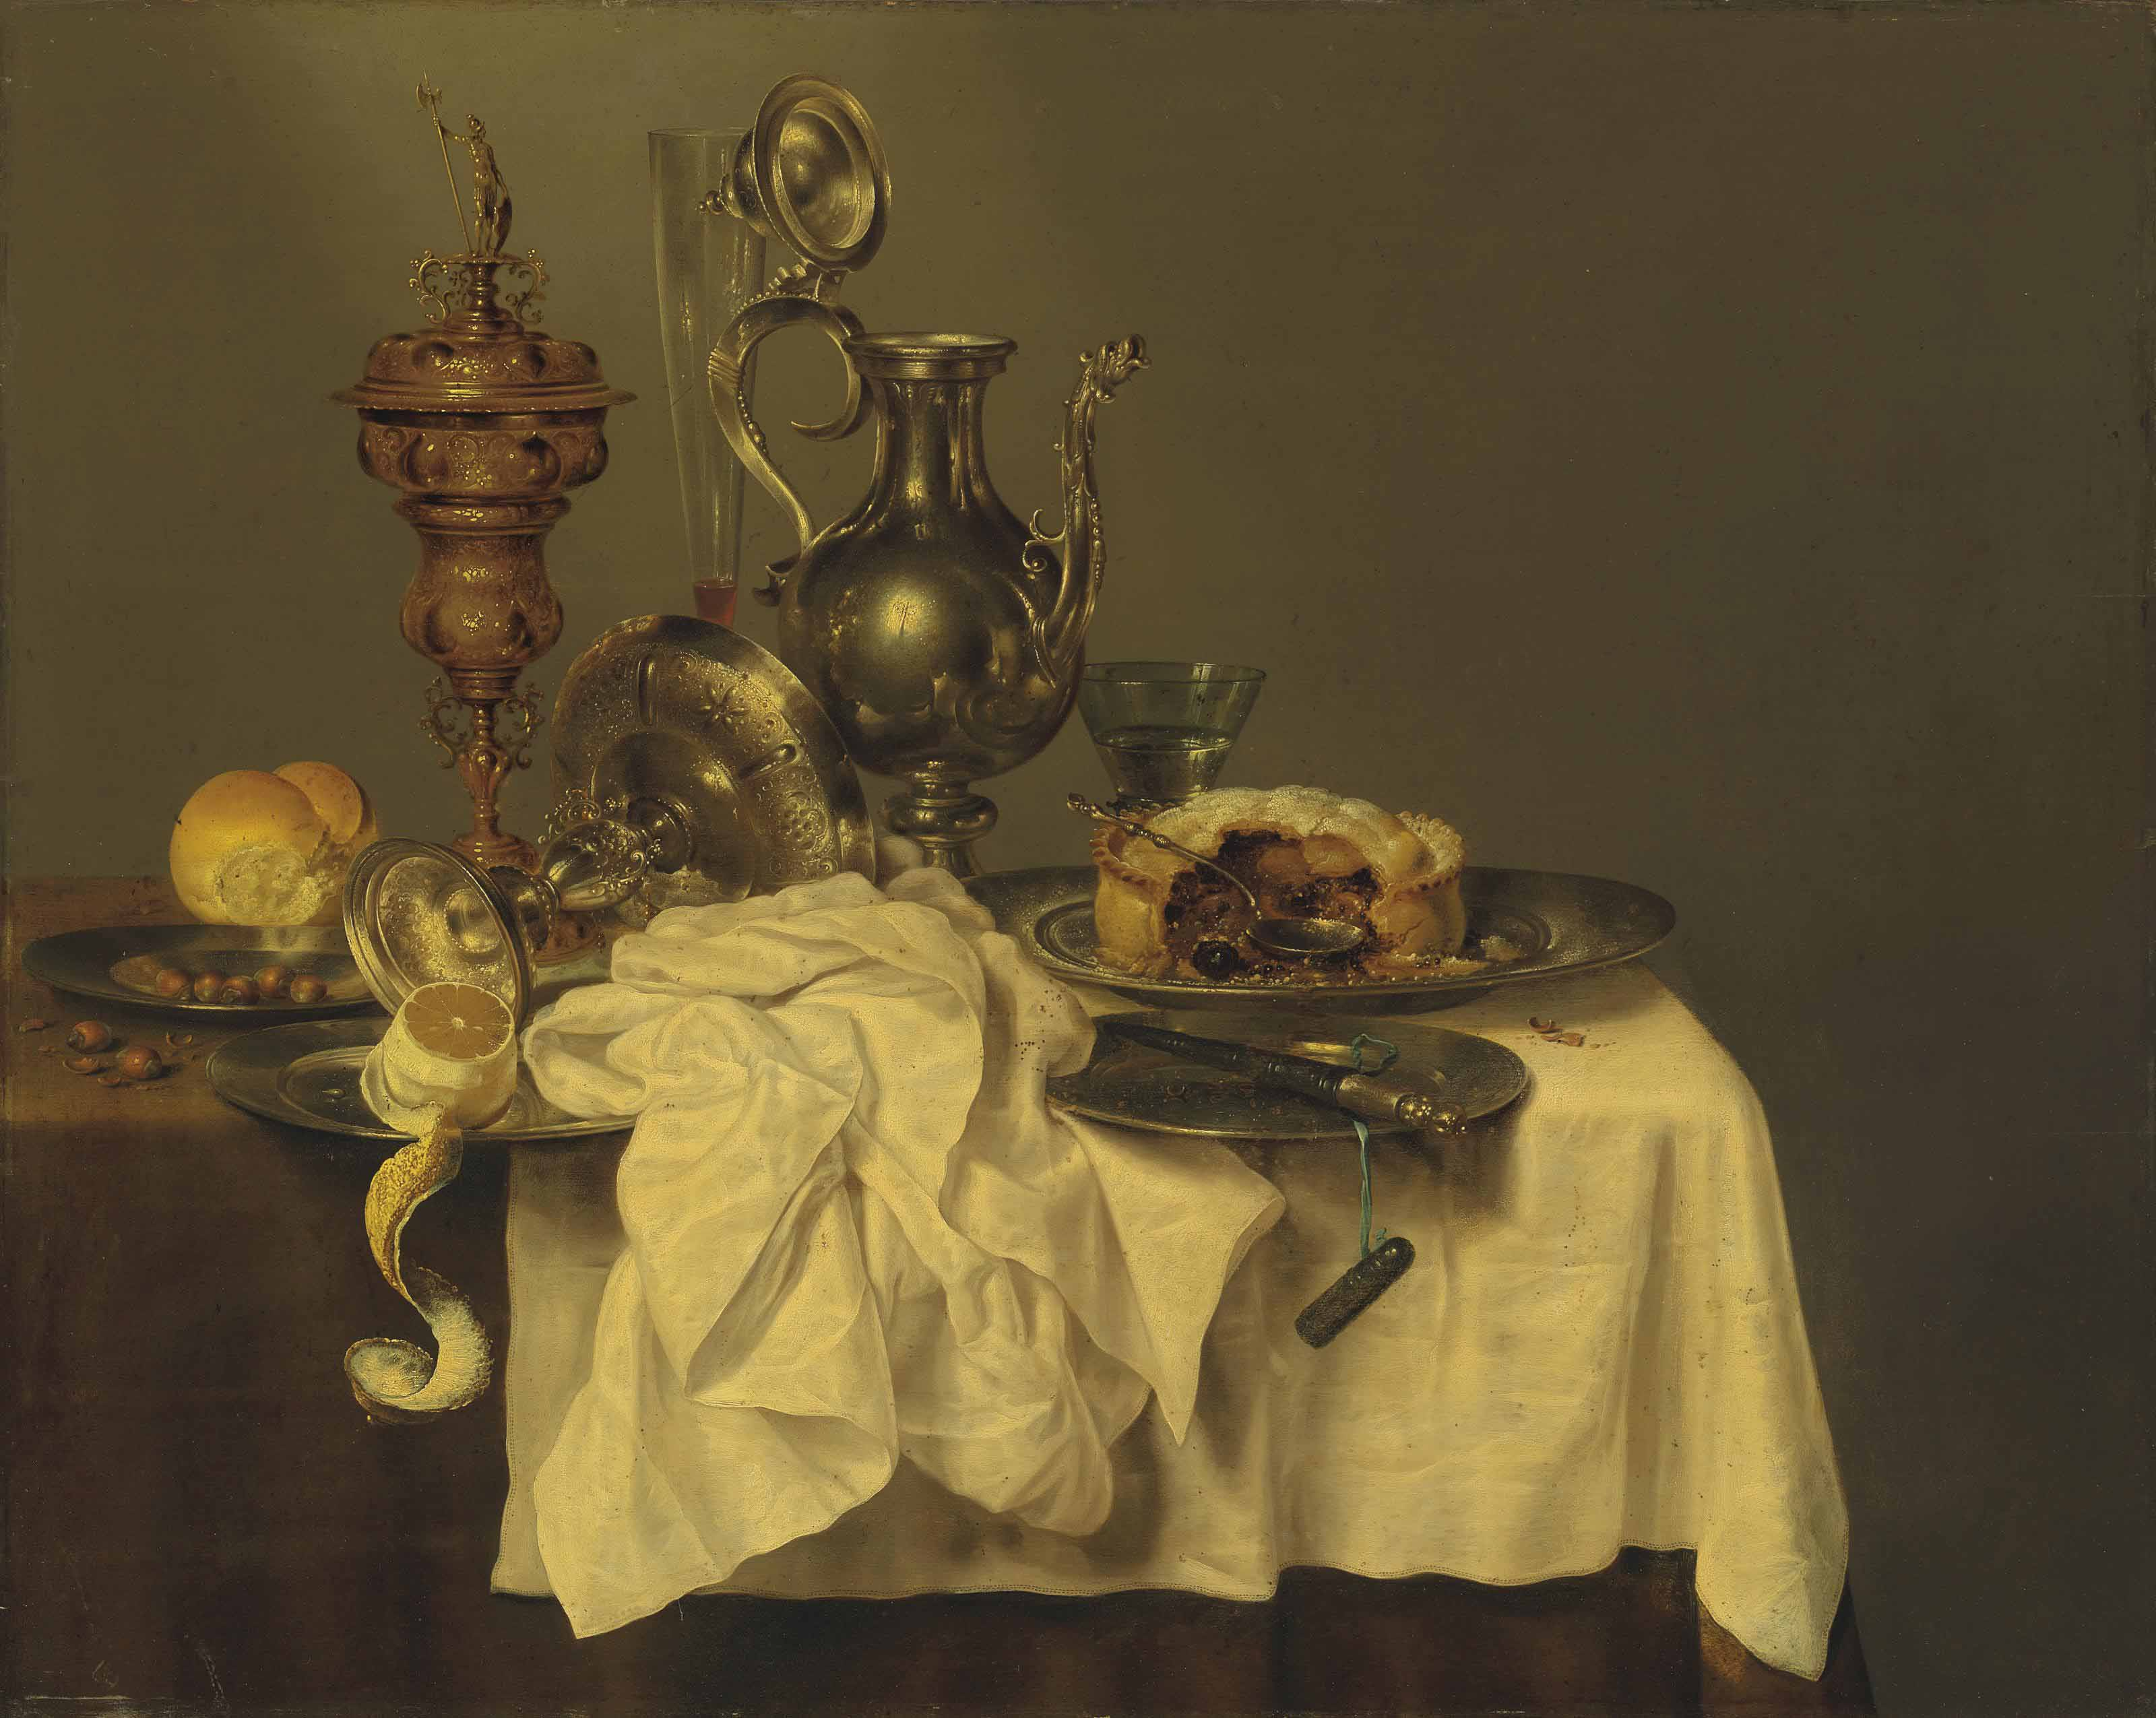 A blackberry pie on a pewter platter, a silver-gilded cup and cover, an upturned tazza, a partly-peeled lemon, a bread roll, hazelnuts, a façon-de-Venise glass, a silver decanter, a roemer, and a knife on a pewter platter, on a partly draped table